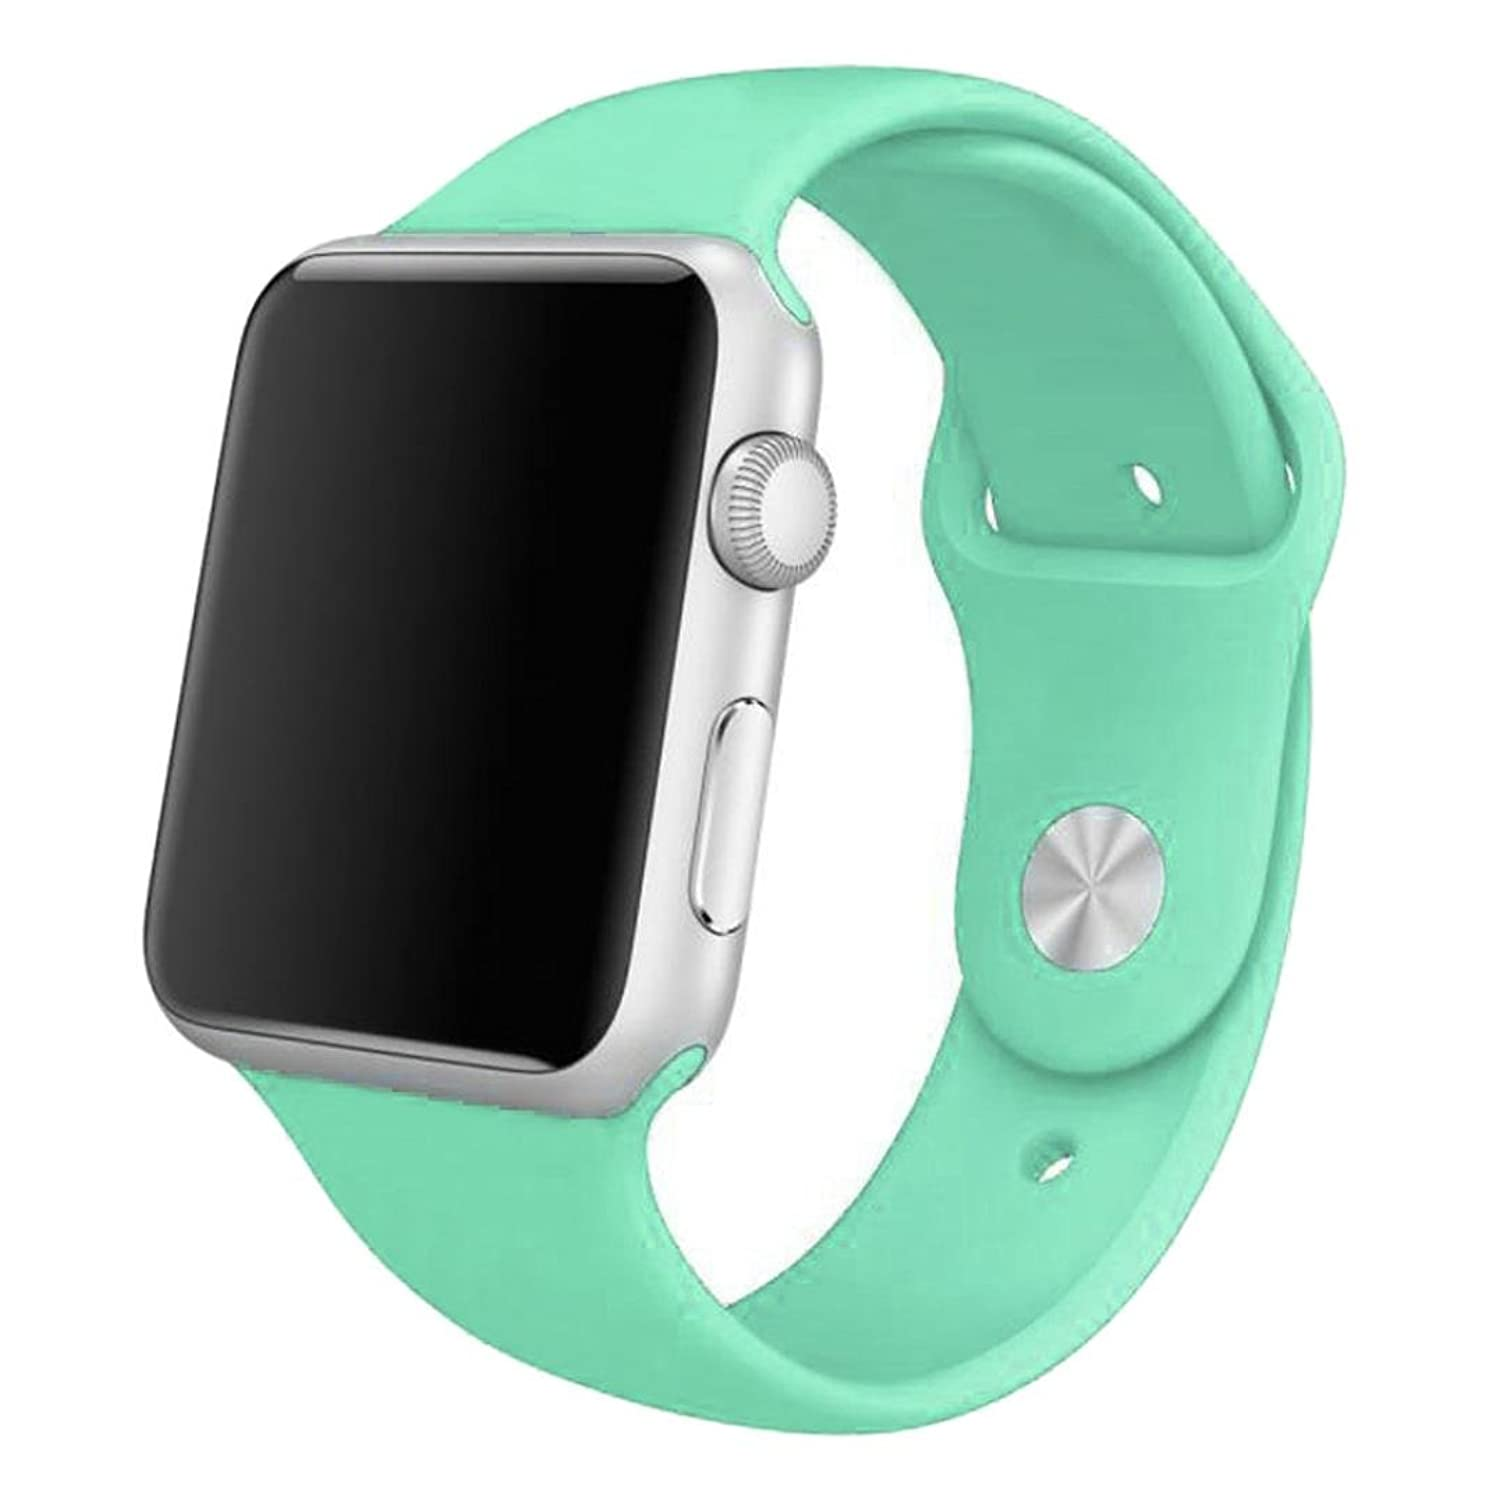 Apple Watch 42mm,GBSELL New Sports Silicone Bracelet Strap Band For Apple Watch 42mm